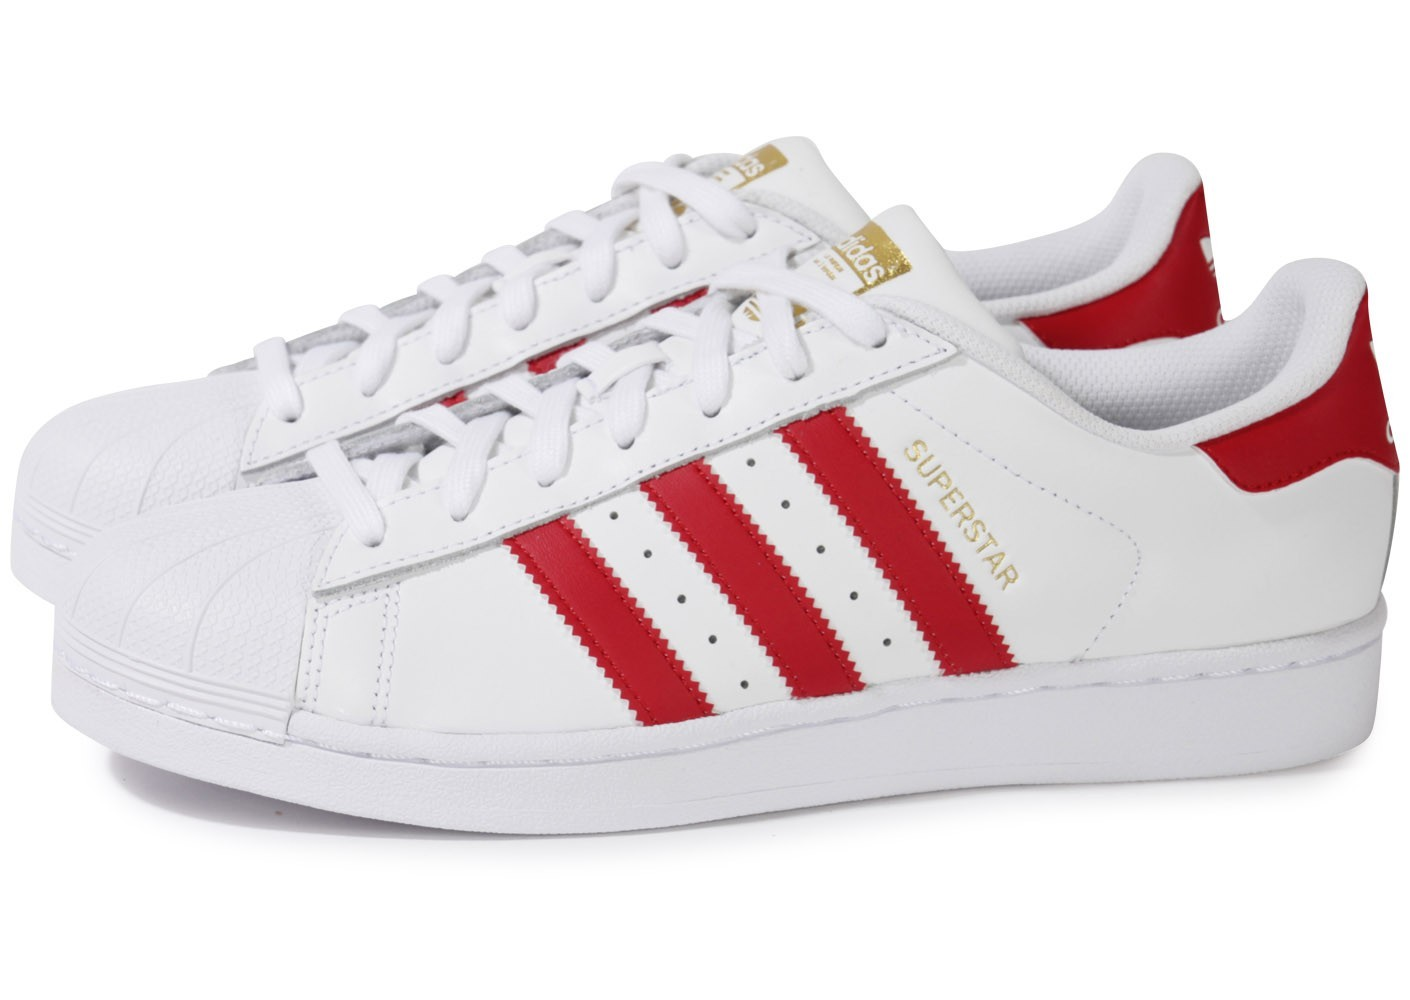 adidas superstar occasion Off 50% - www.bashhguidelines.org